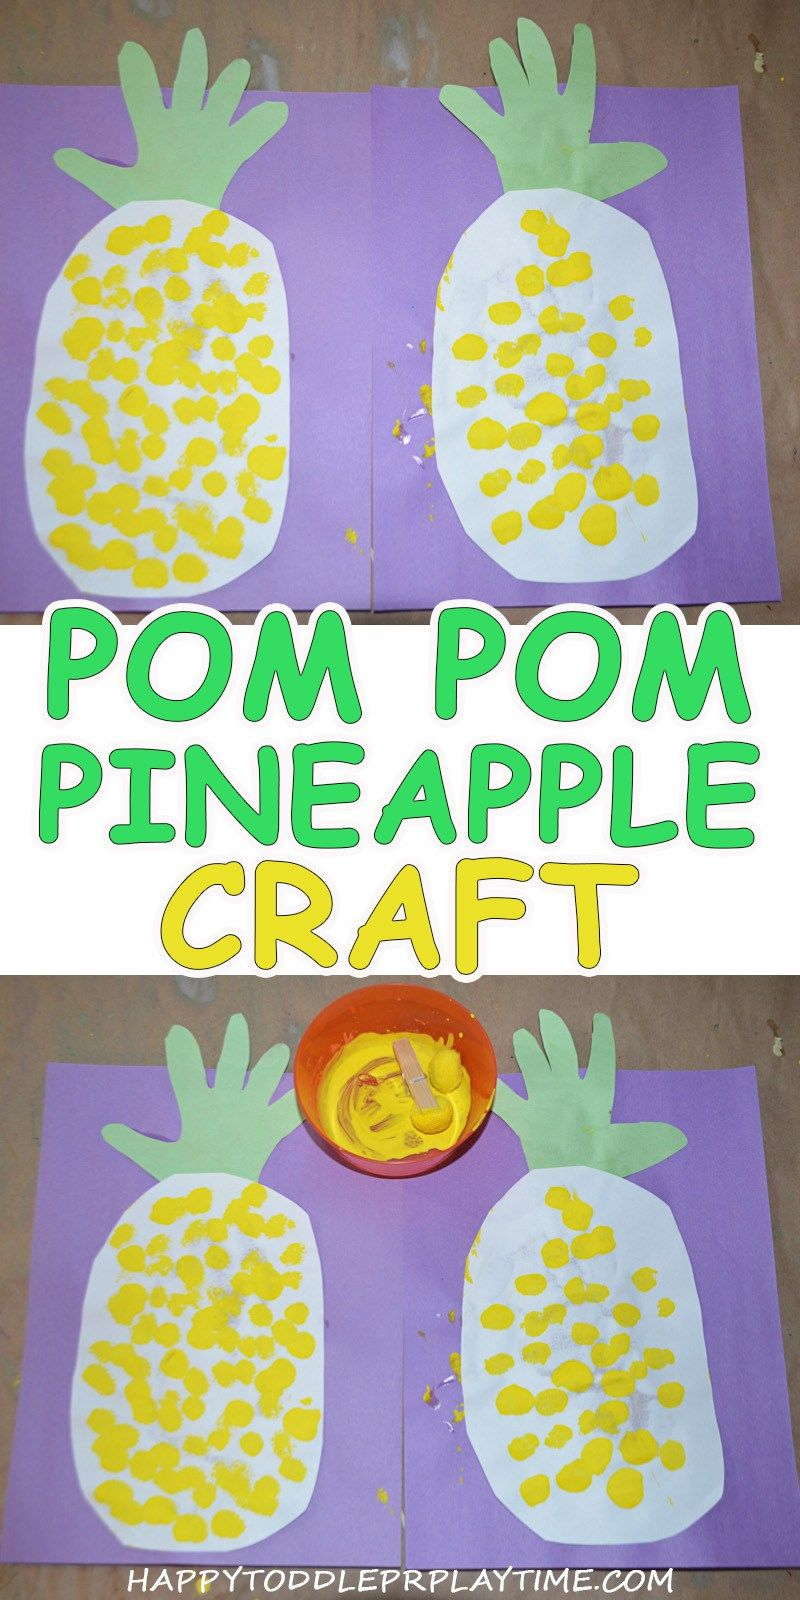 Pom Pom Painted Pineapple Craft Toddler Classroom Daycare Crafts